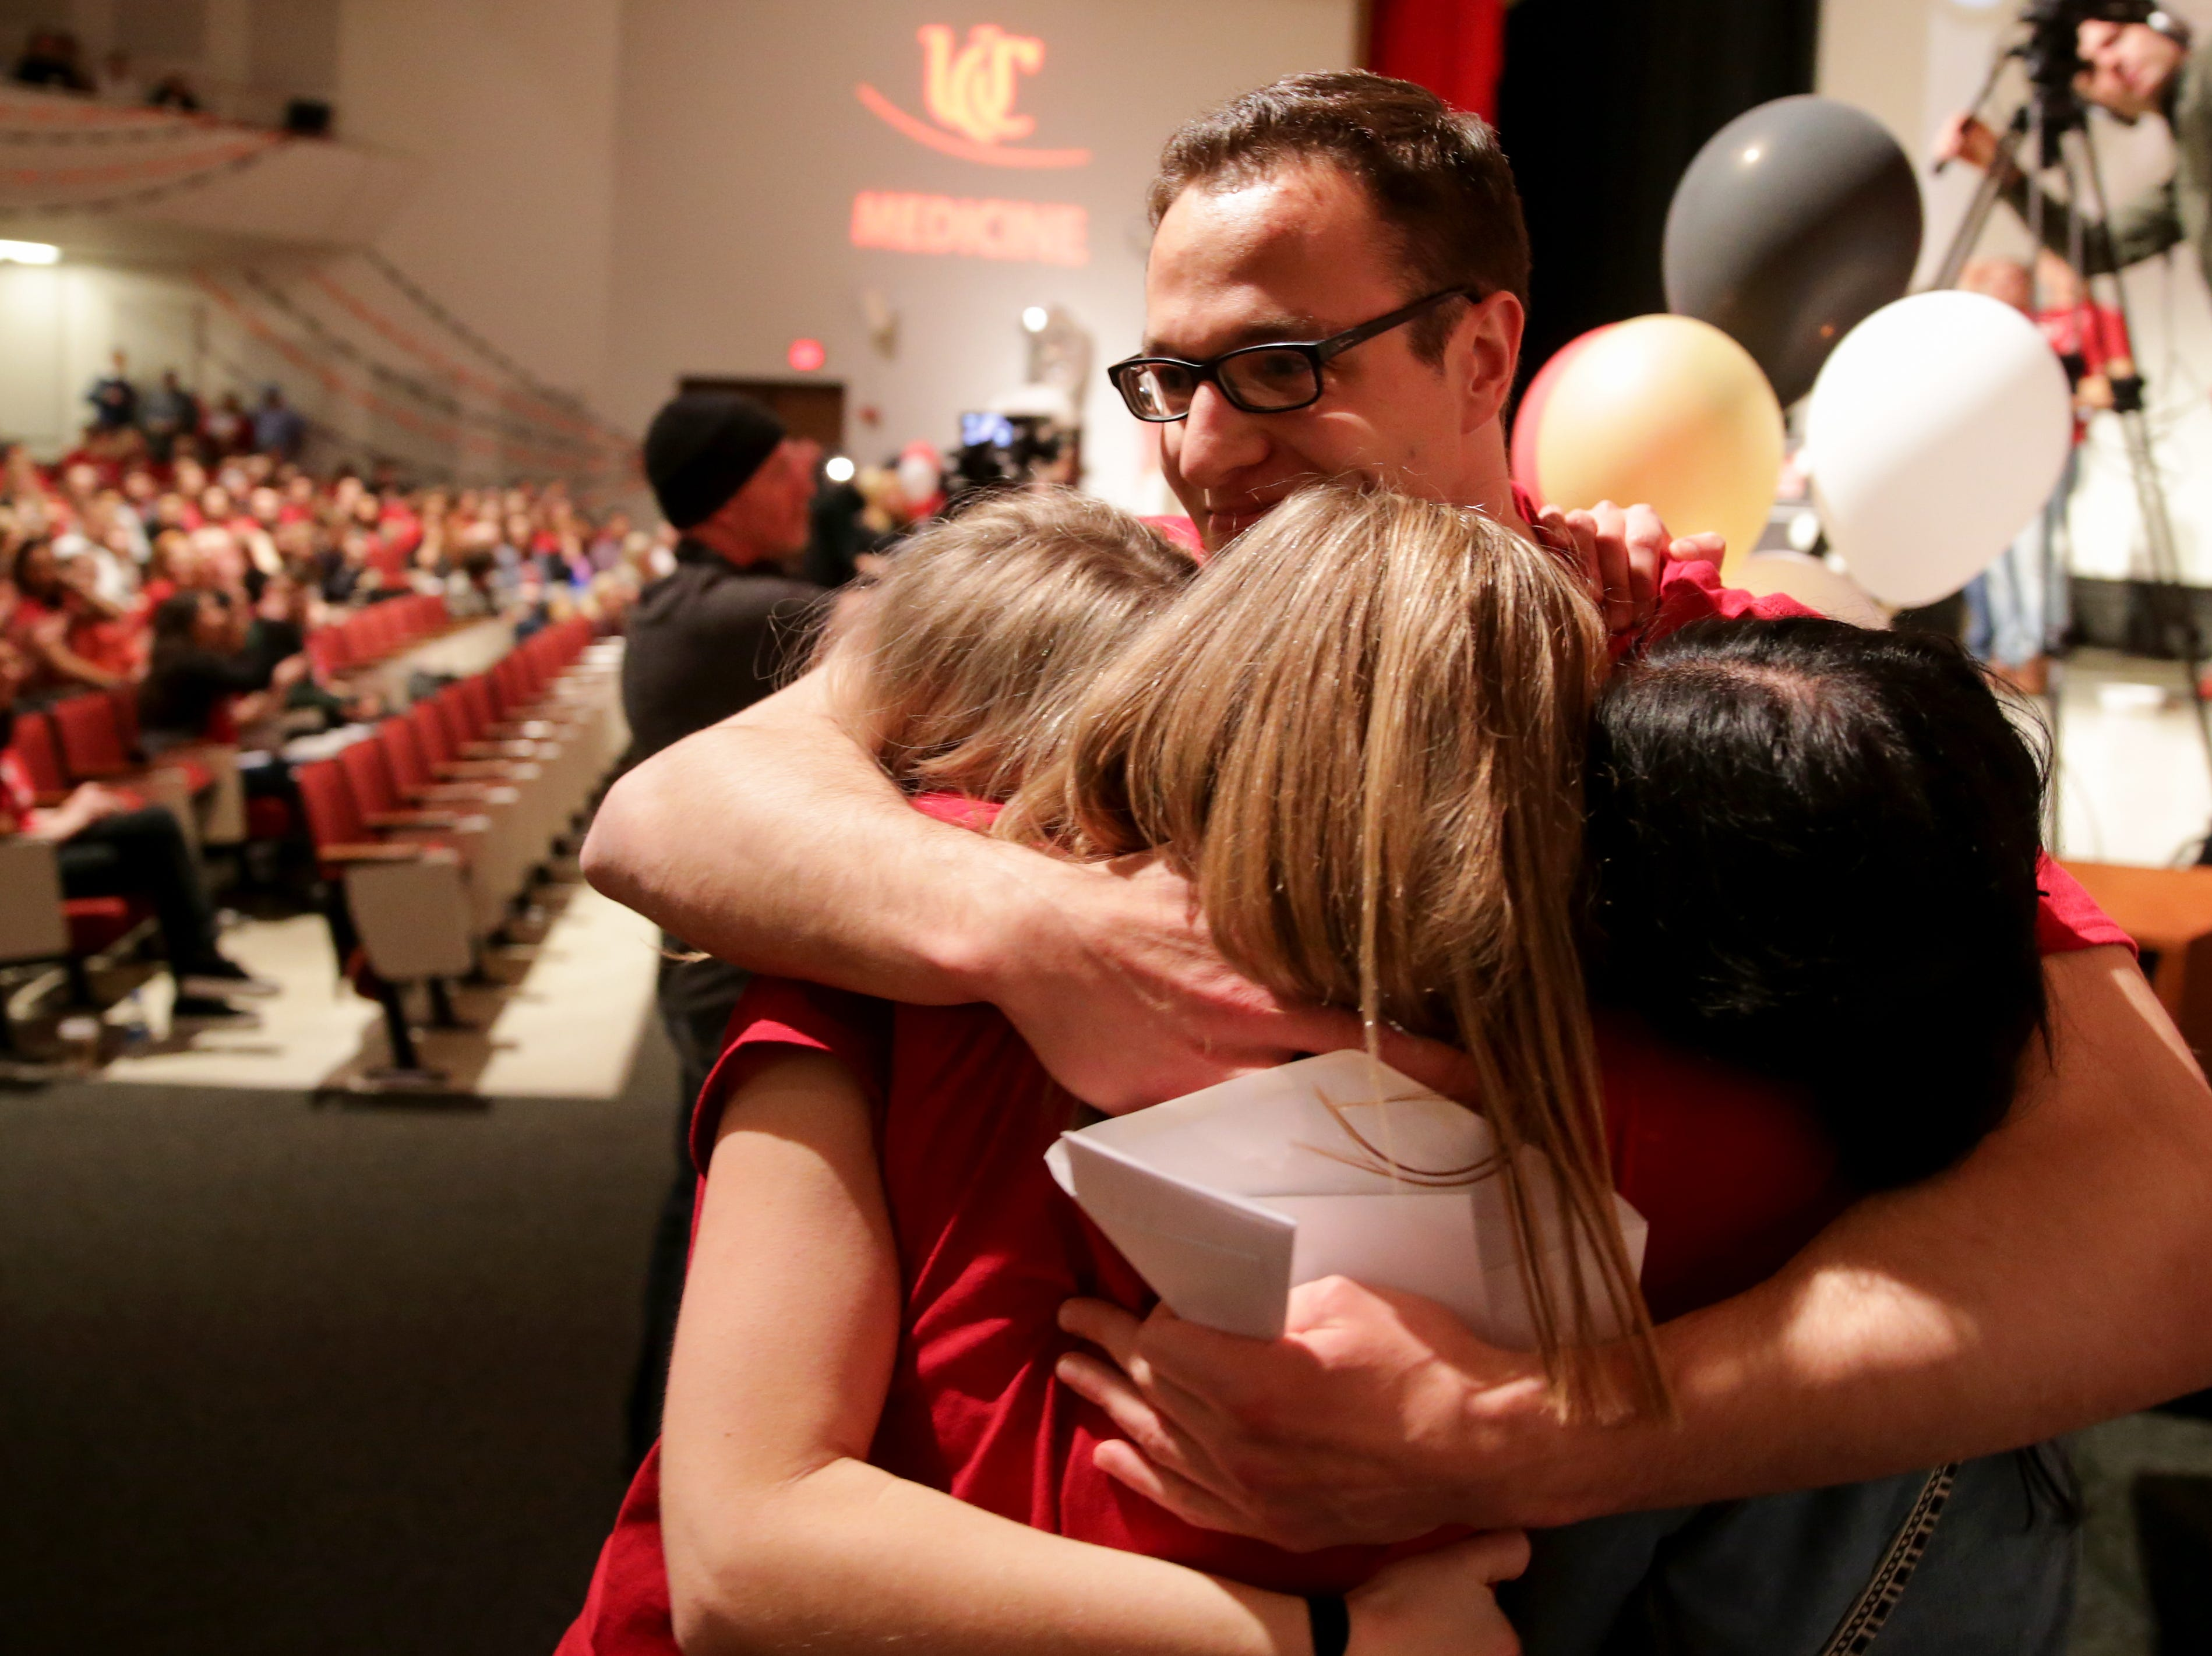 Karl Greenblatt hugs three of his classmates during Match Day, Friday, March 15, 2019, at the University of Cincinnati's College of Medicine.